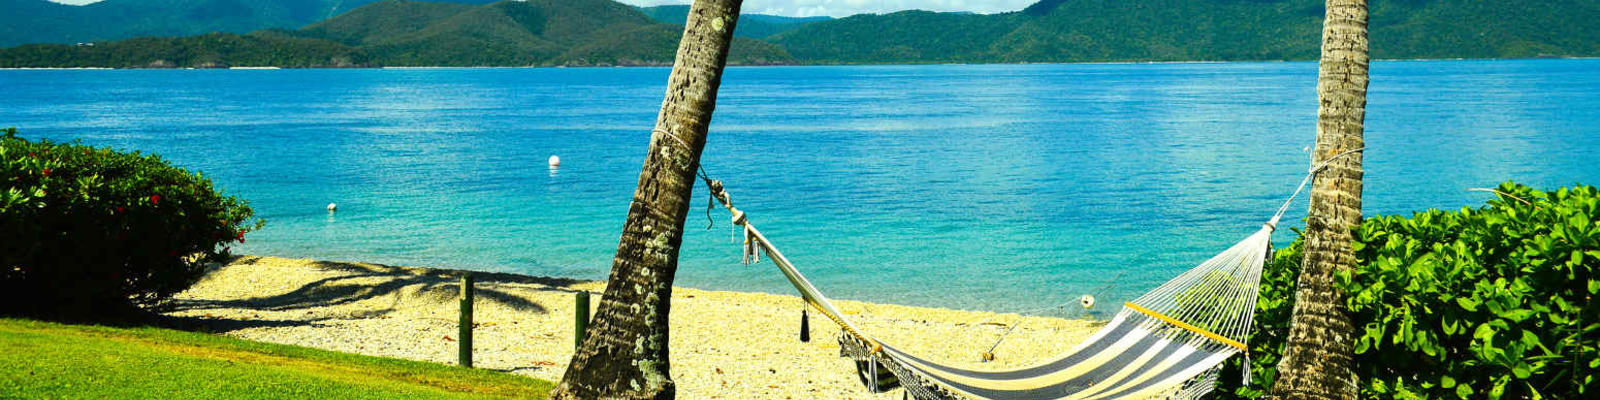 A hammock slung between two trees on Daydream Island, Queensland.